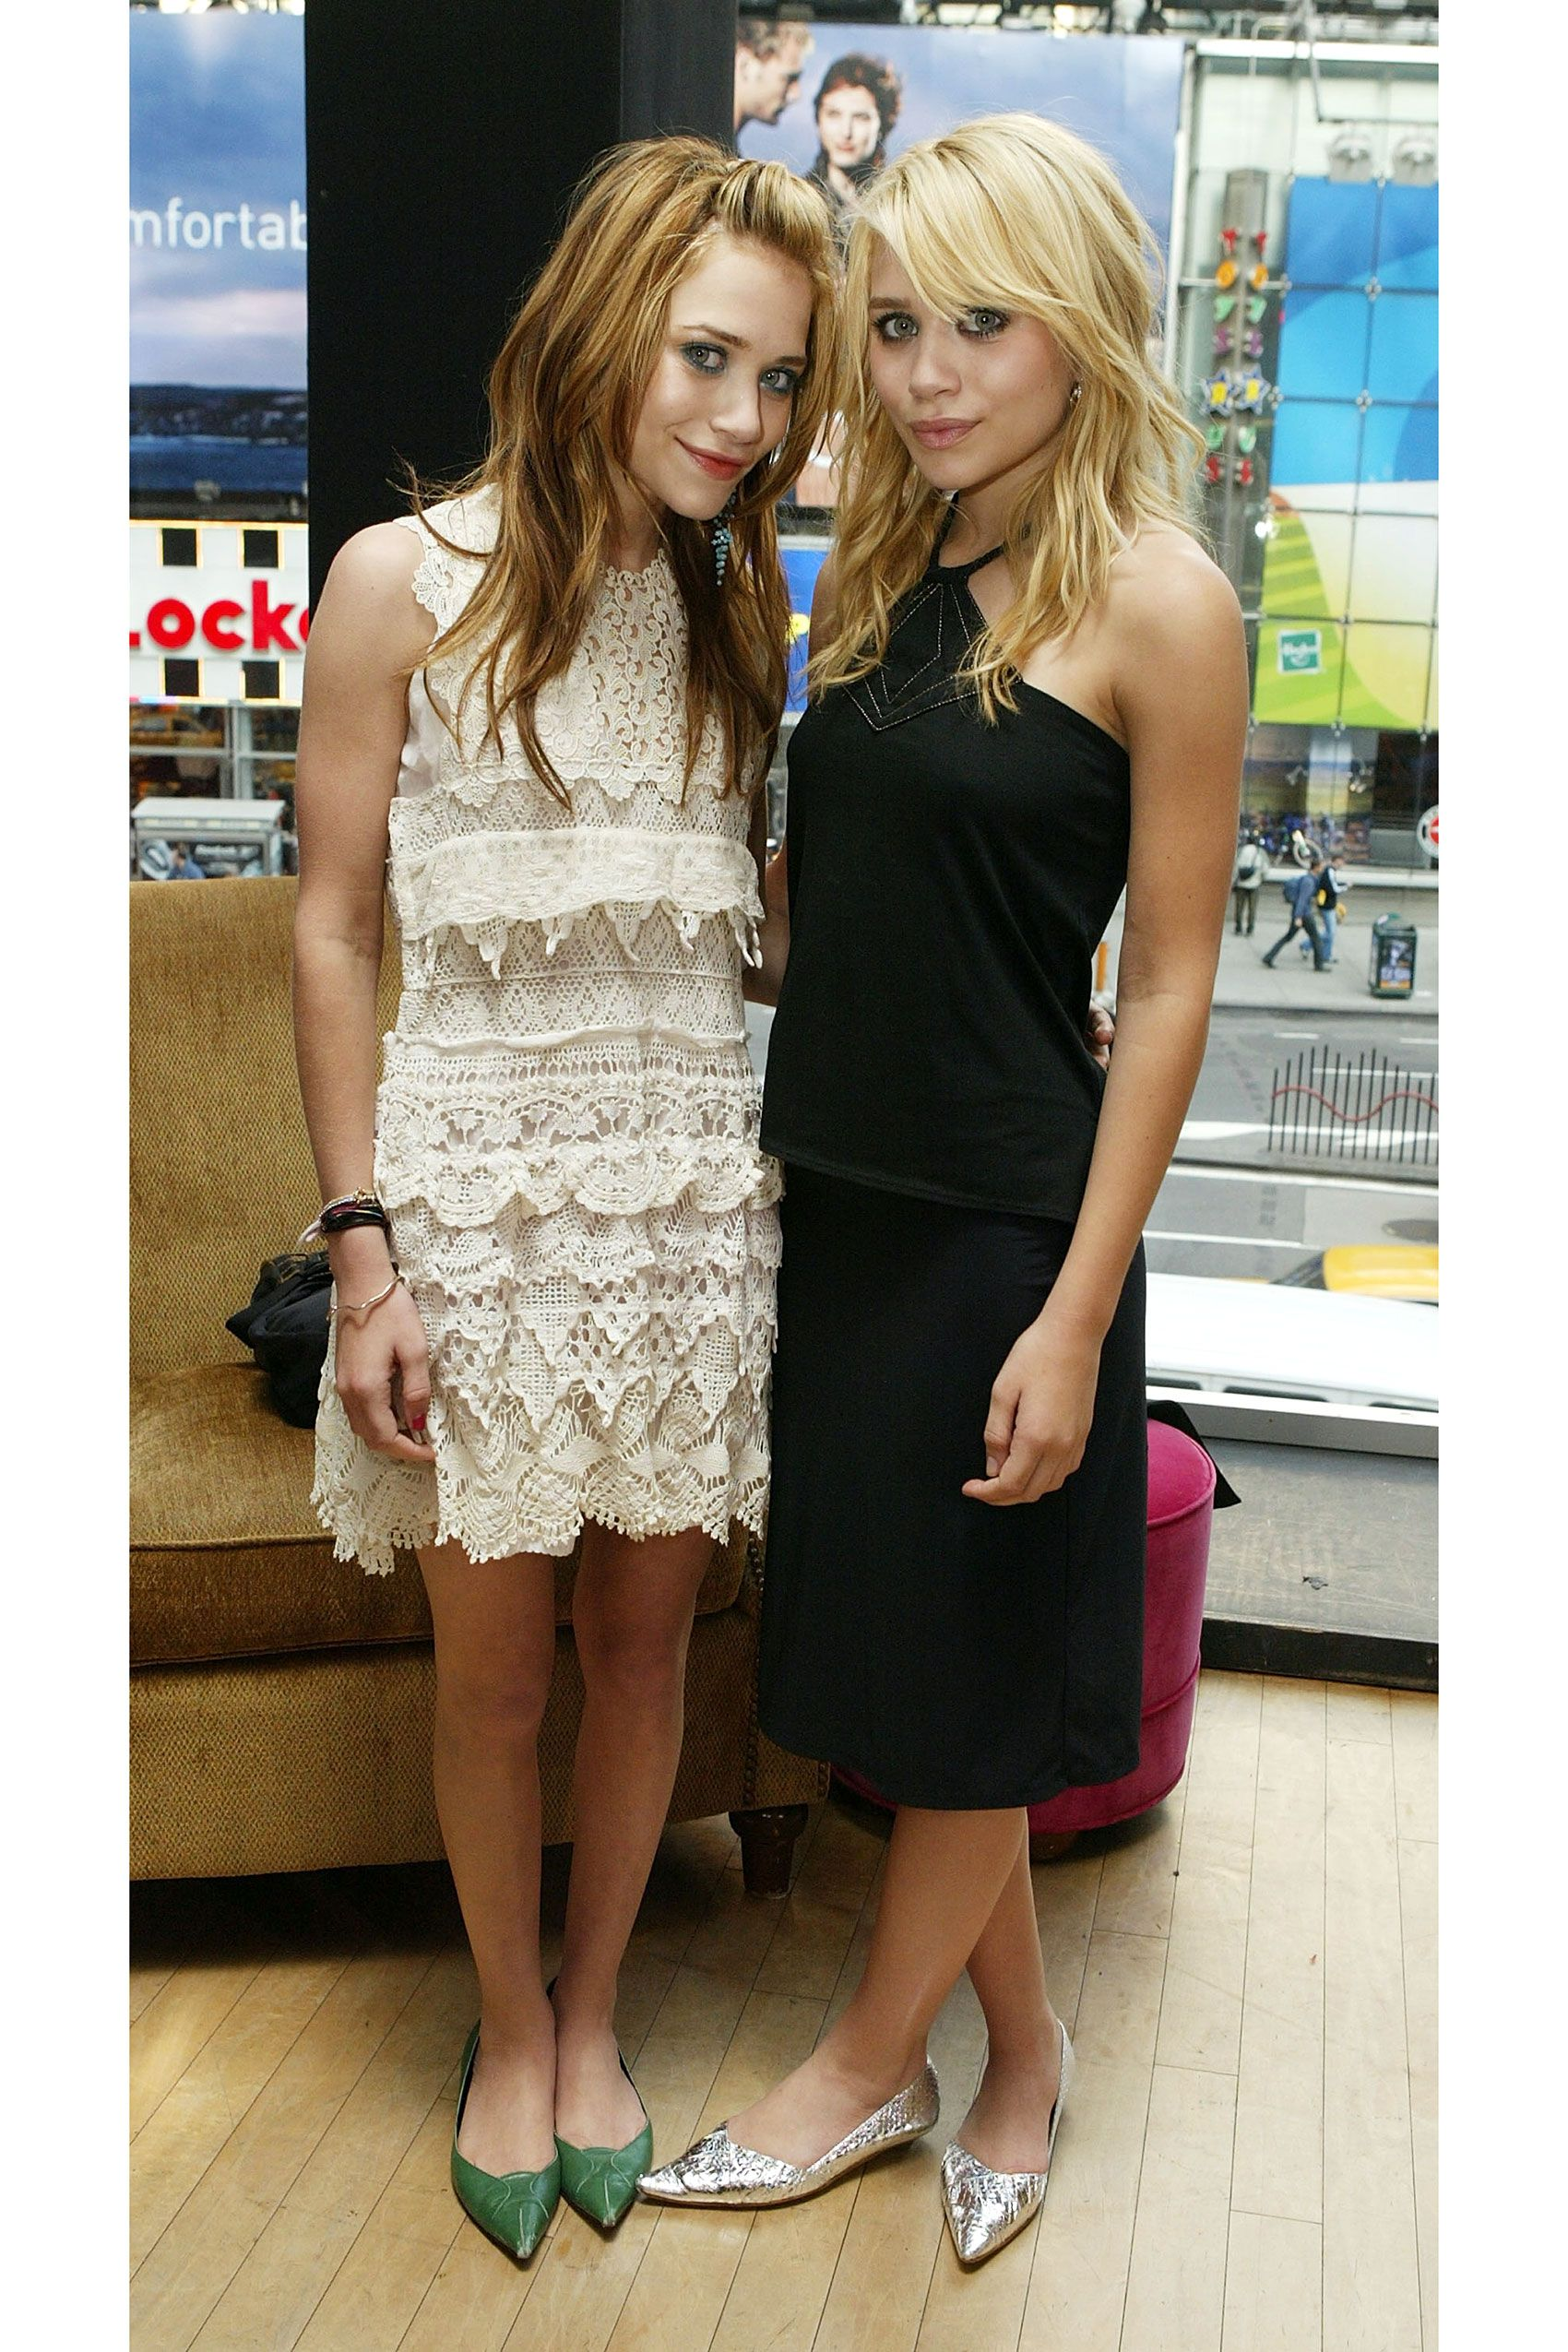 Mary kate ashley olsen style dress